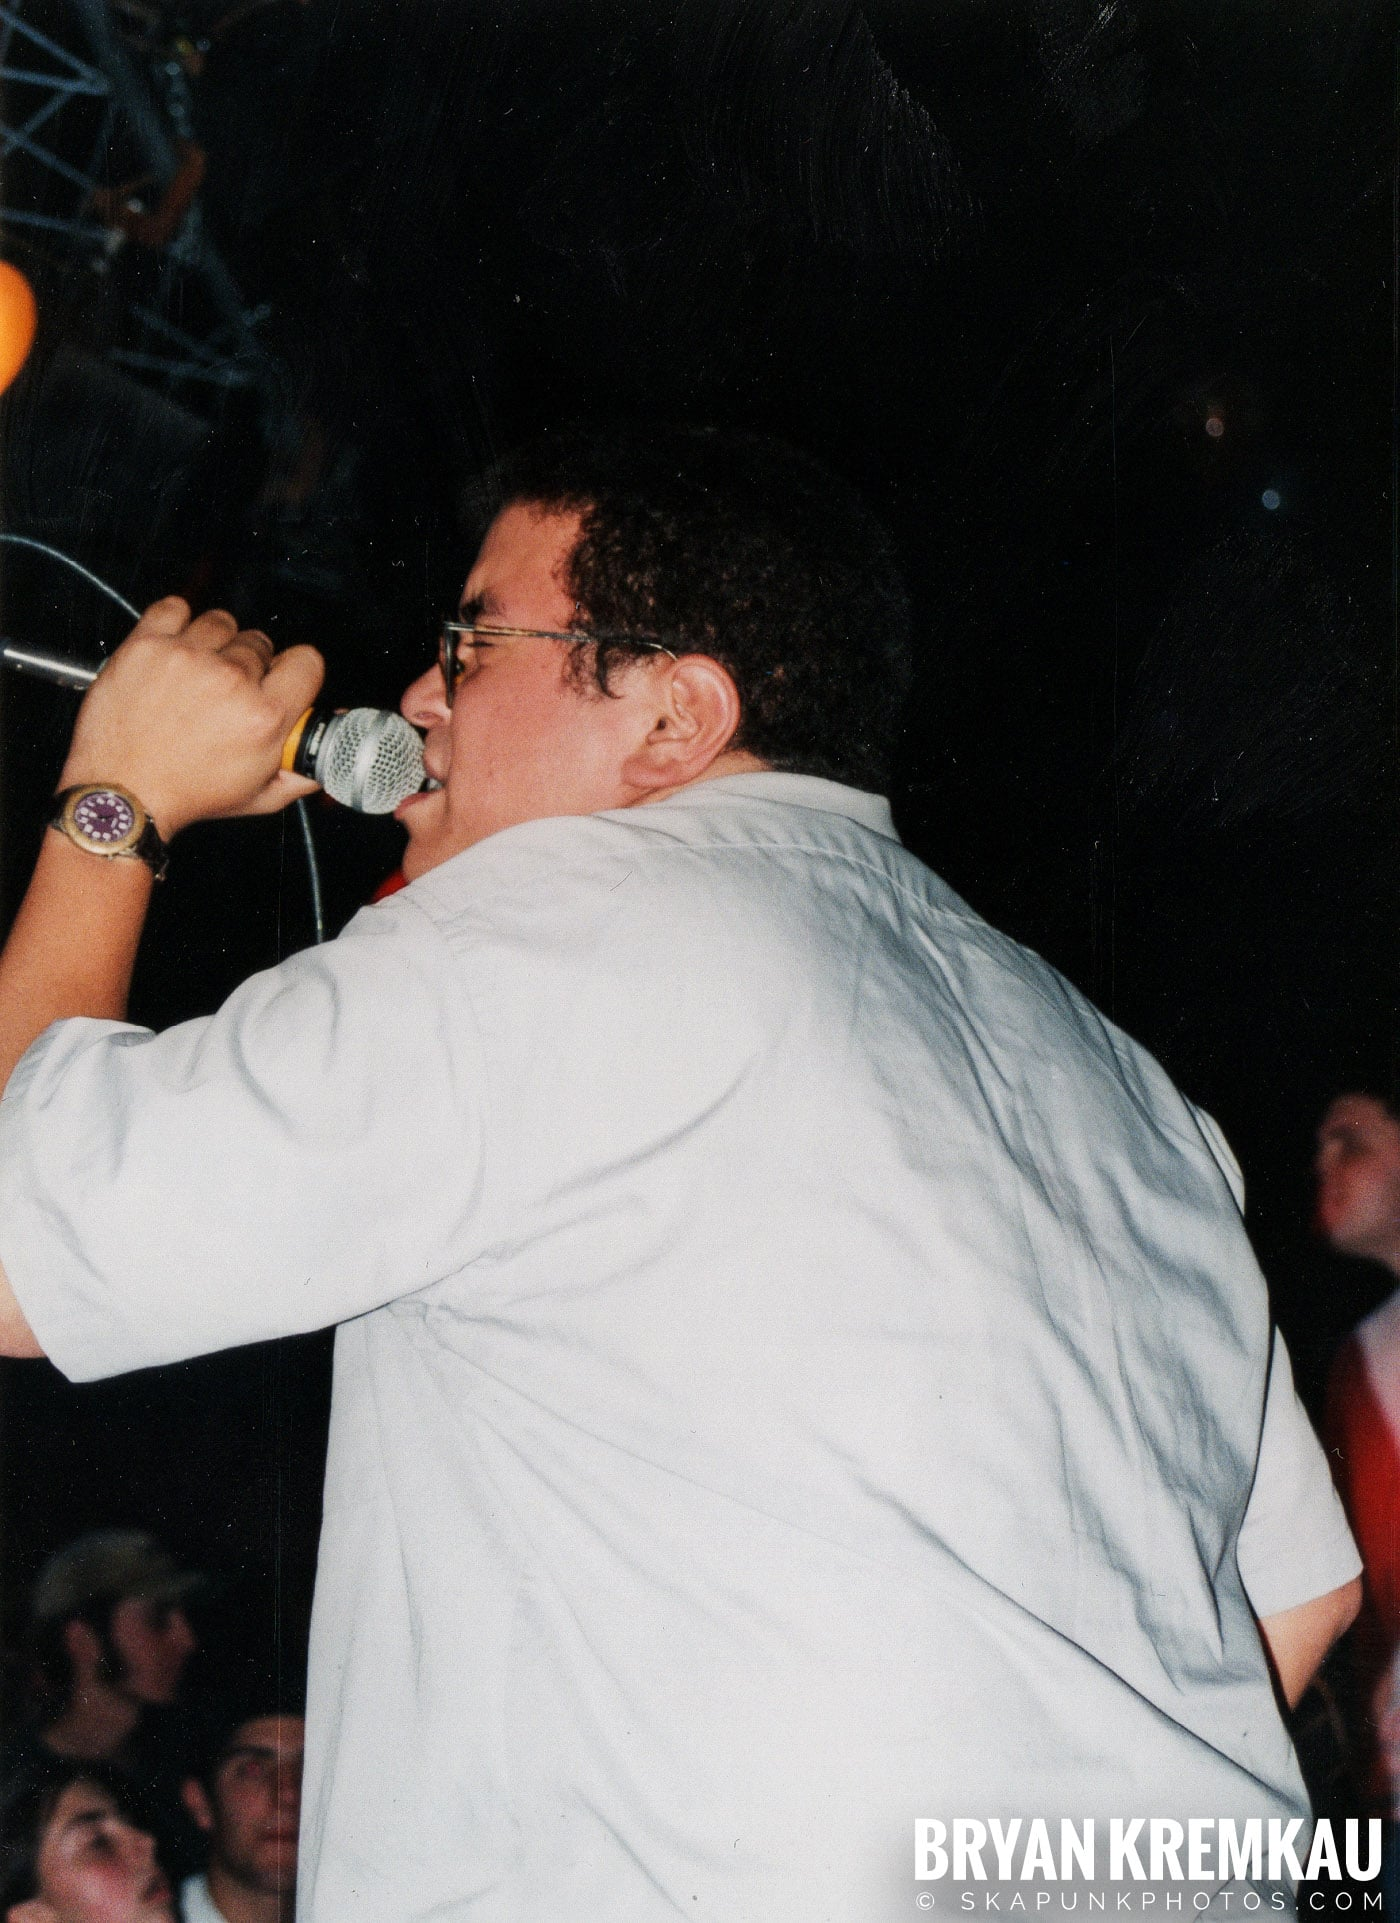 Edna's Goldfish @ Skater's World, Wayne, NJ - 11.7.98 (7)